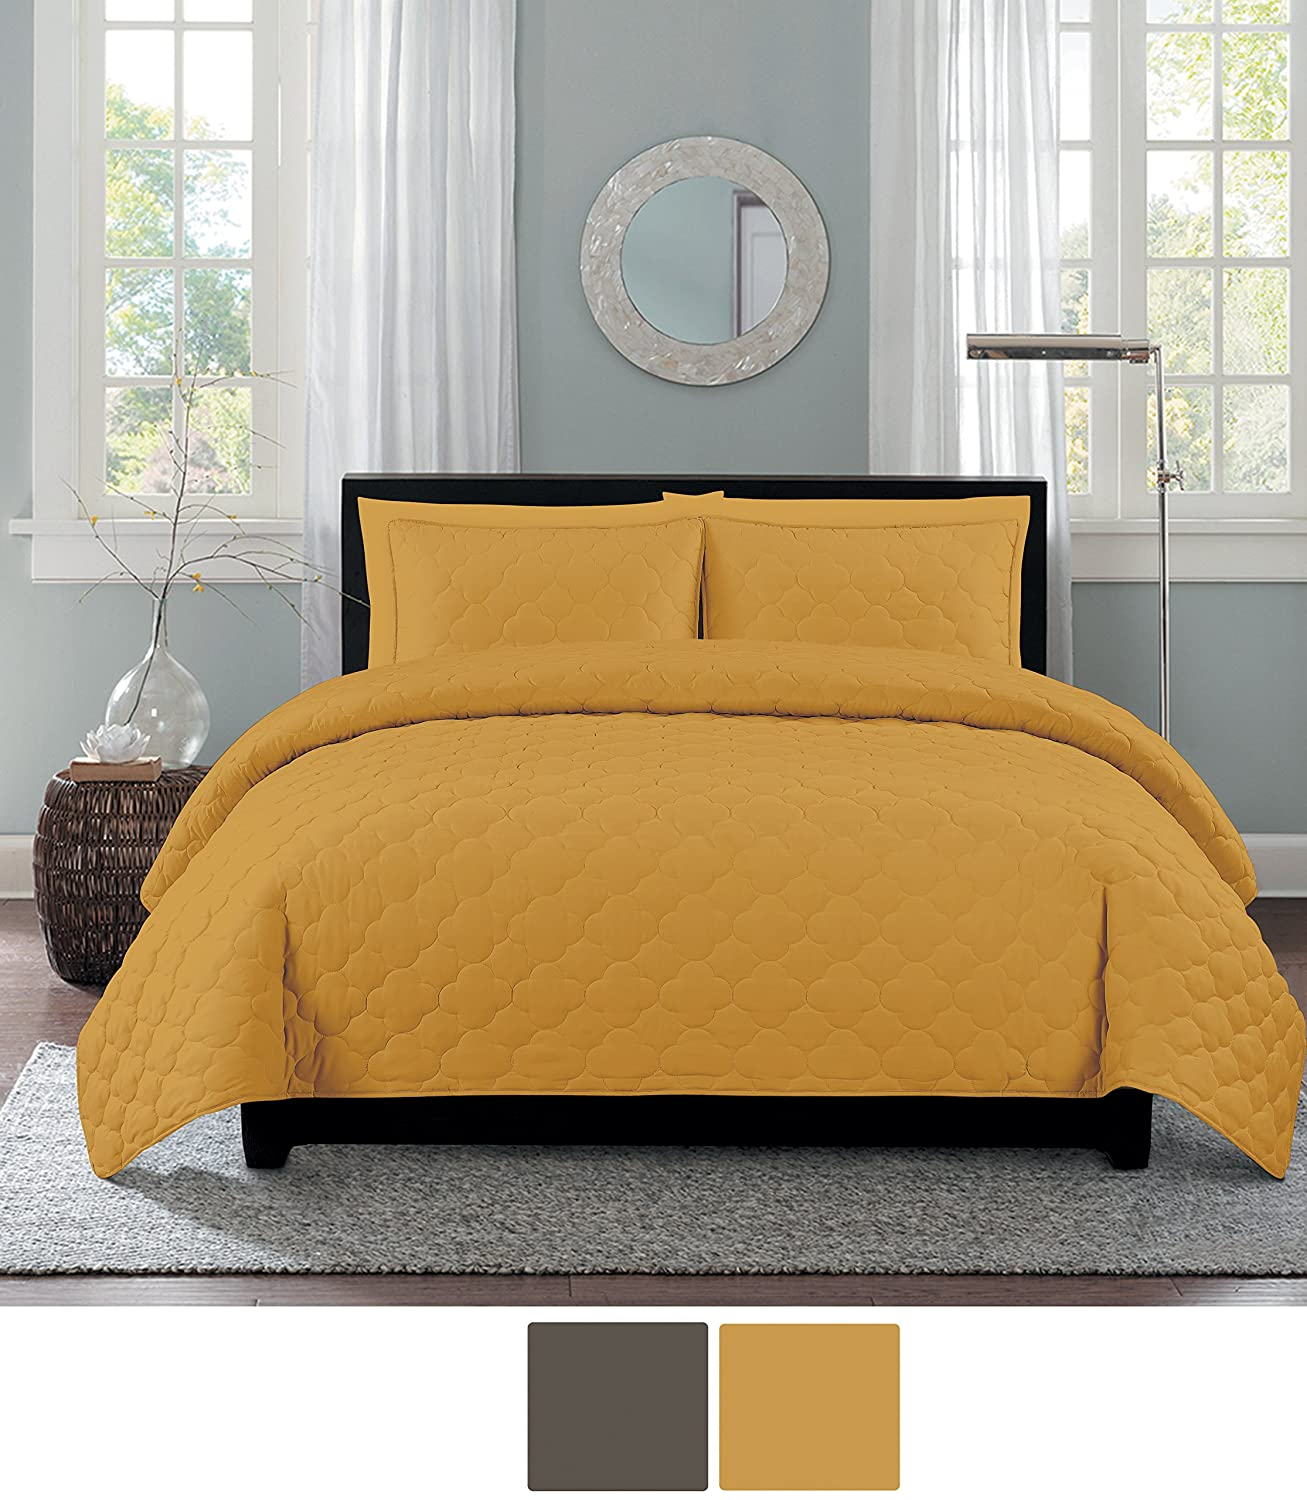 NC Home Fashions Catalina quilt set, Full/Queen, Spicy Mustard